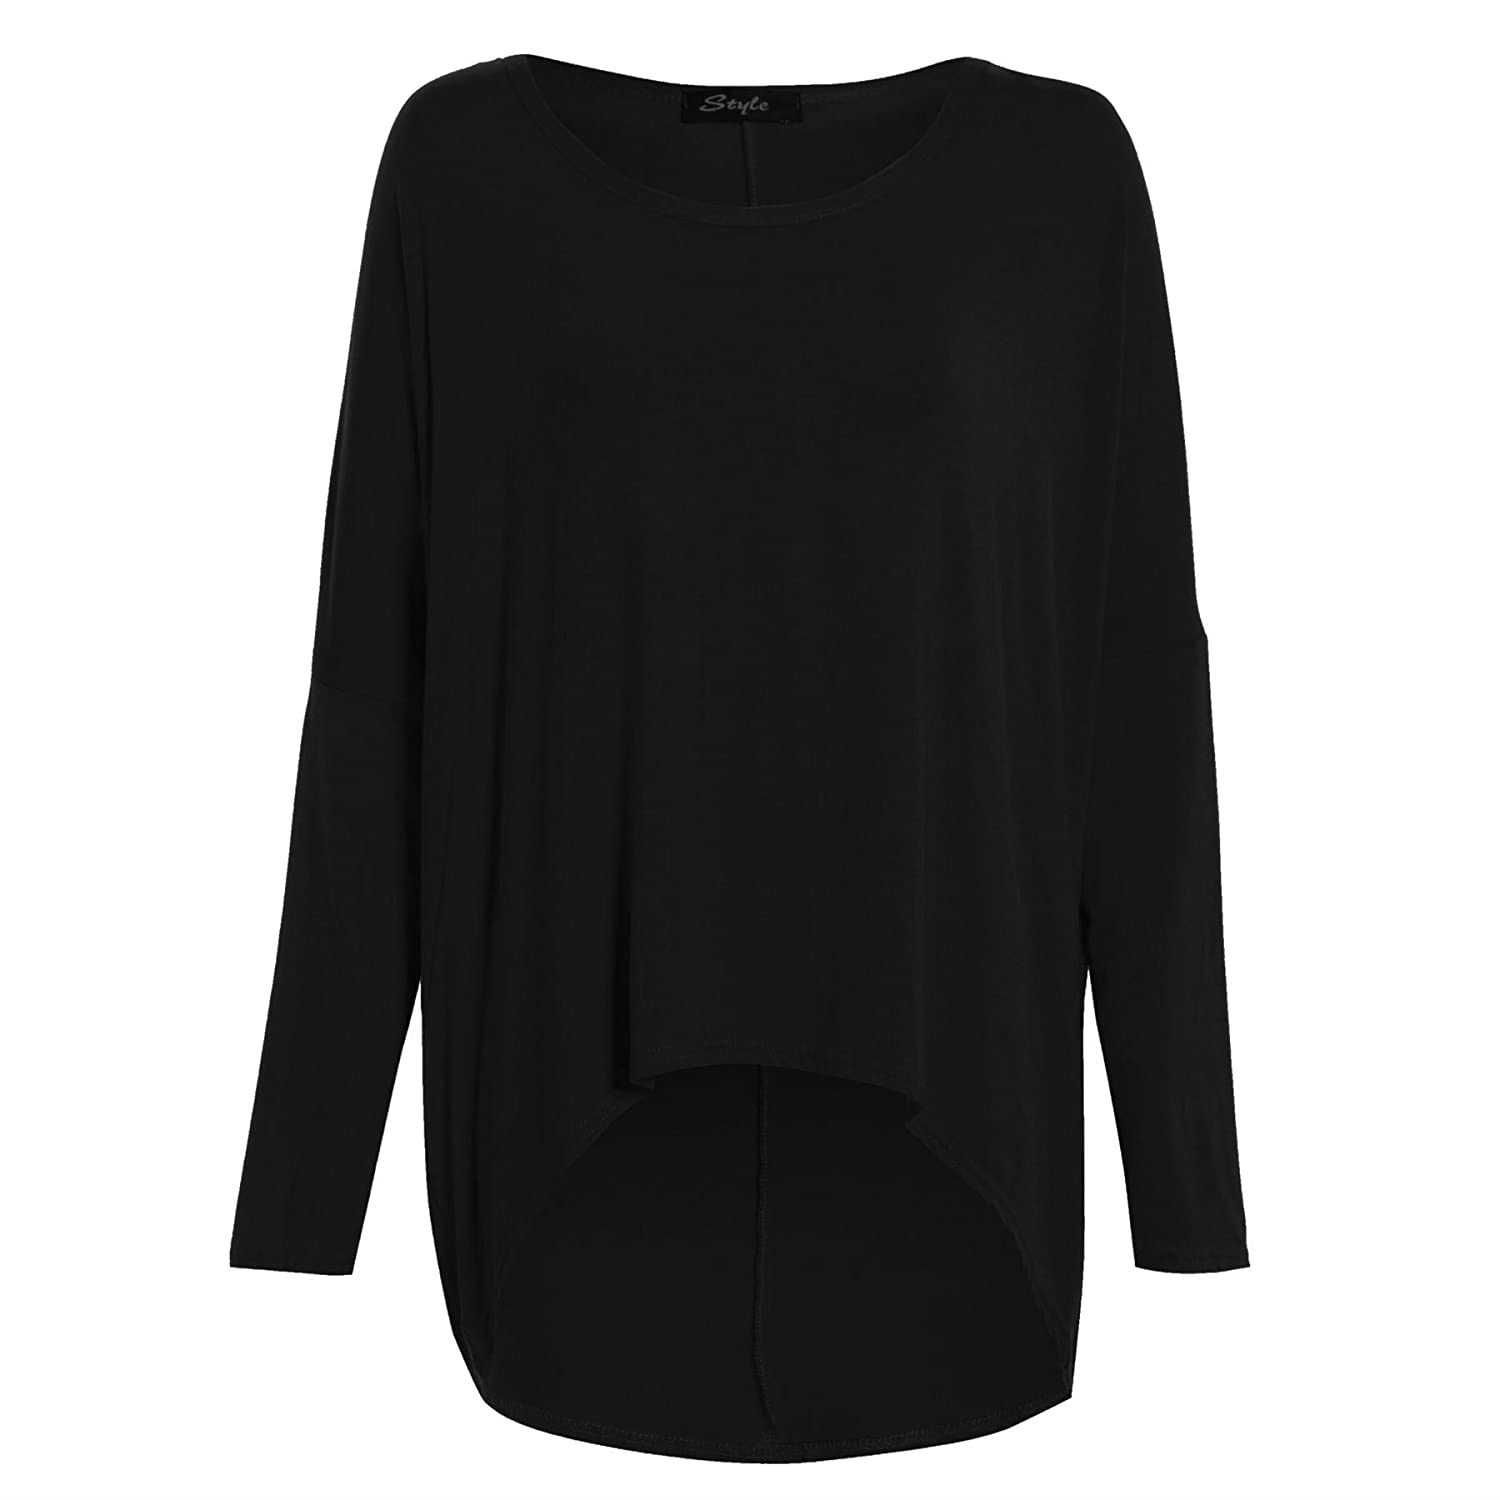 Womens Ladies Oversized Baggy Stretchy Off Shoulder High Low Dip Dipped Hem Top BE JEALOUS